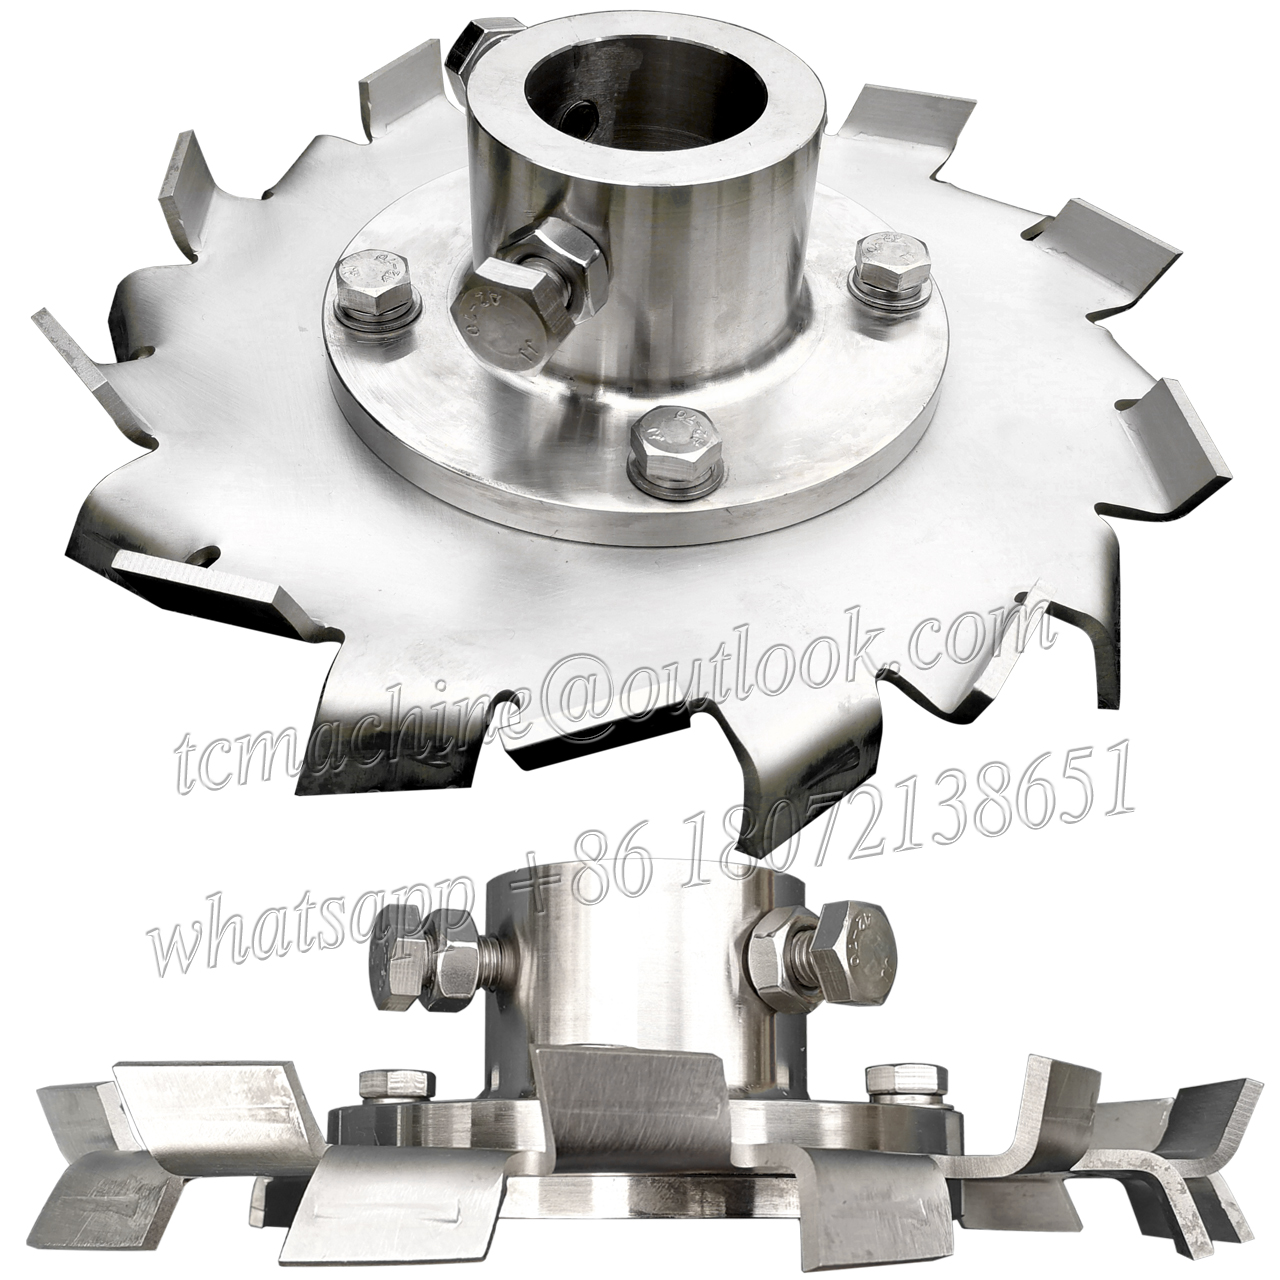 high shear disperser mixer cowles disc impeller for latex paste (cowl disc only)